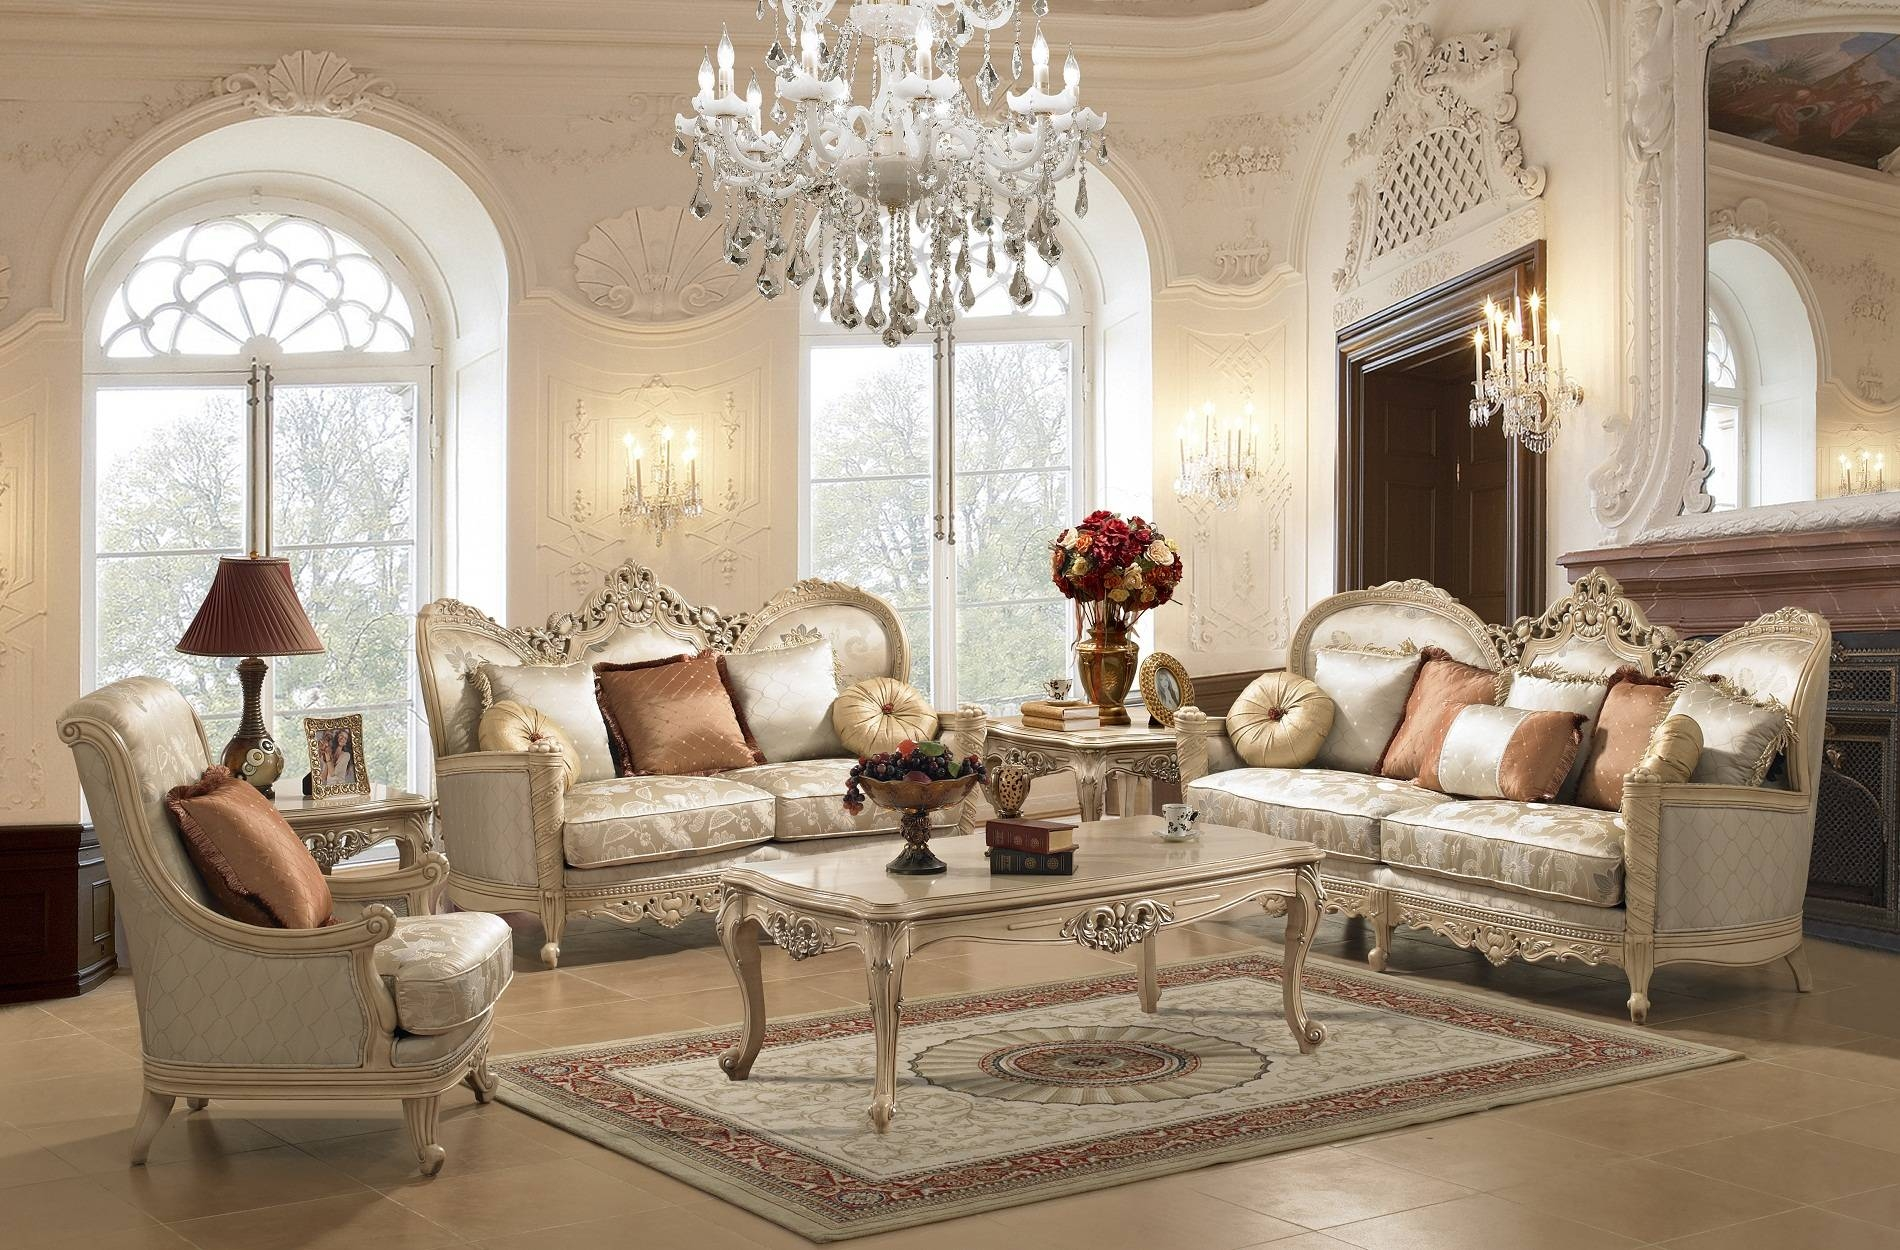 Elegant Couches | Home Design Inspirations with regard to Elegant Sofas and Chairs (Image 5 of 15)